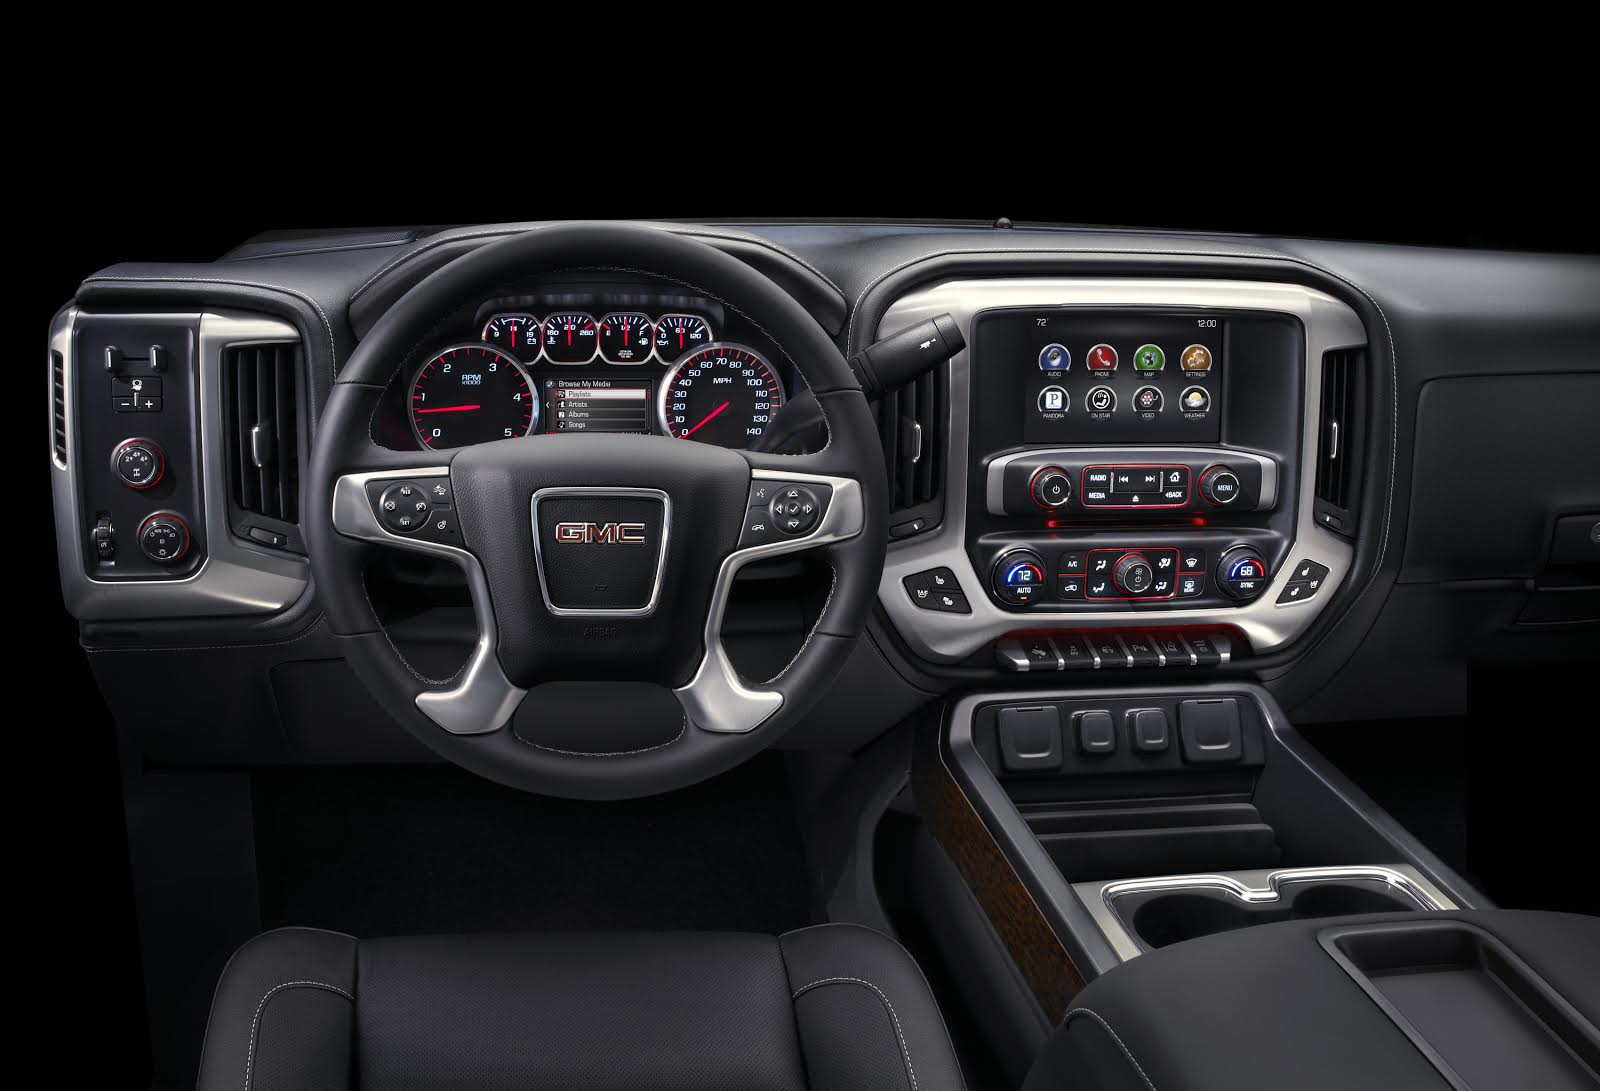 A freshened cabin is part of the HD update for 2015. Shown here is a Sierra in SLT trim.